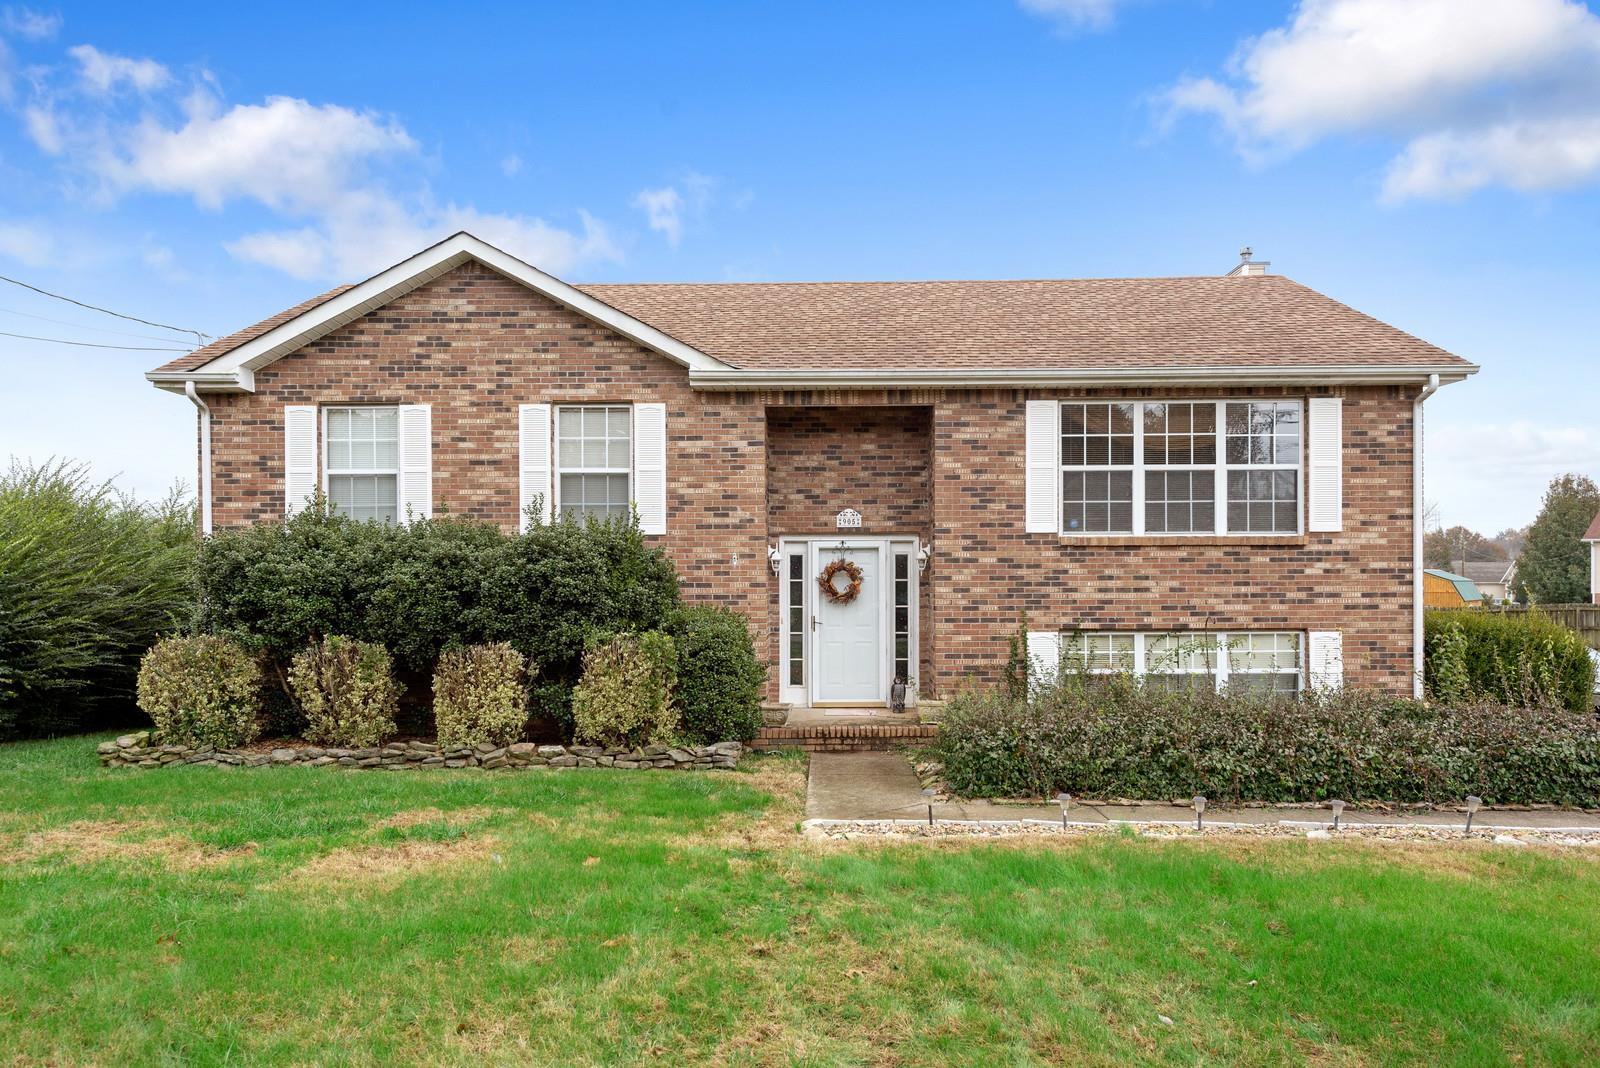 905 Dolphin Ln, Clarksville in Montgomery County County, TN 37043 Home for Sale